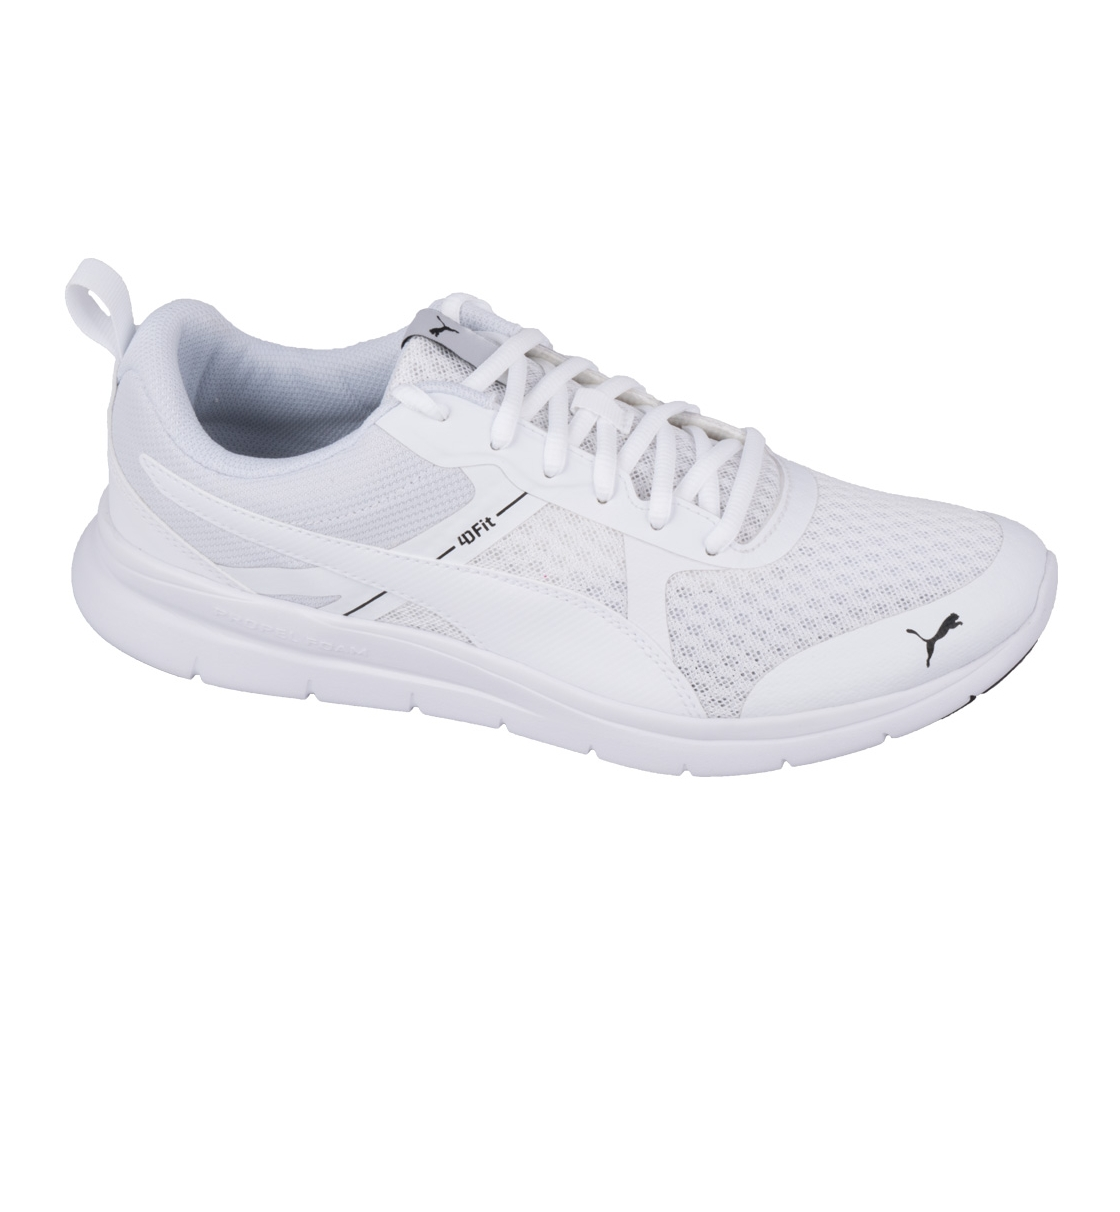 Alta qualit puma flex essential 365268 02